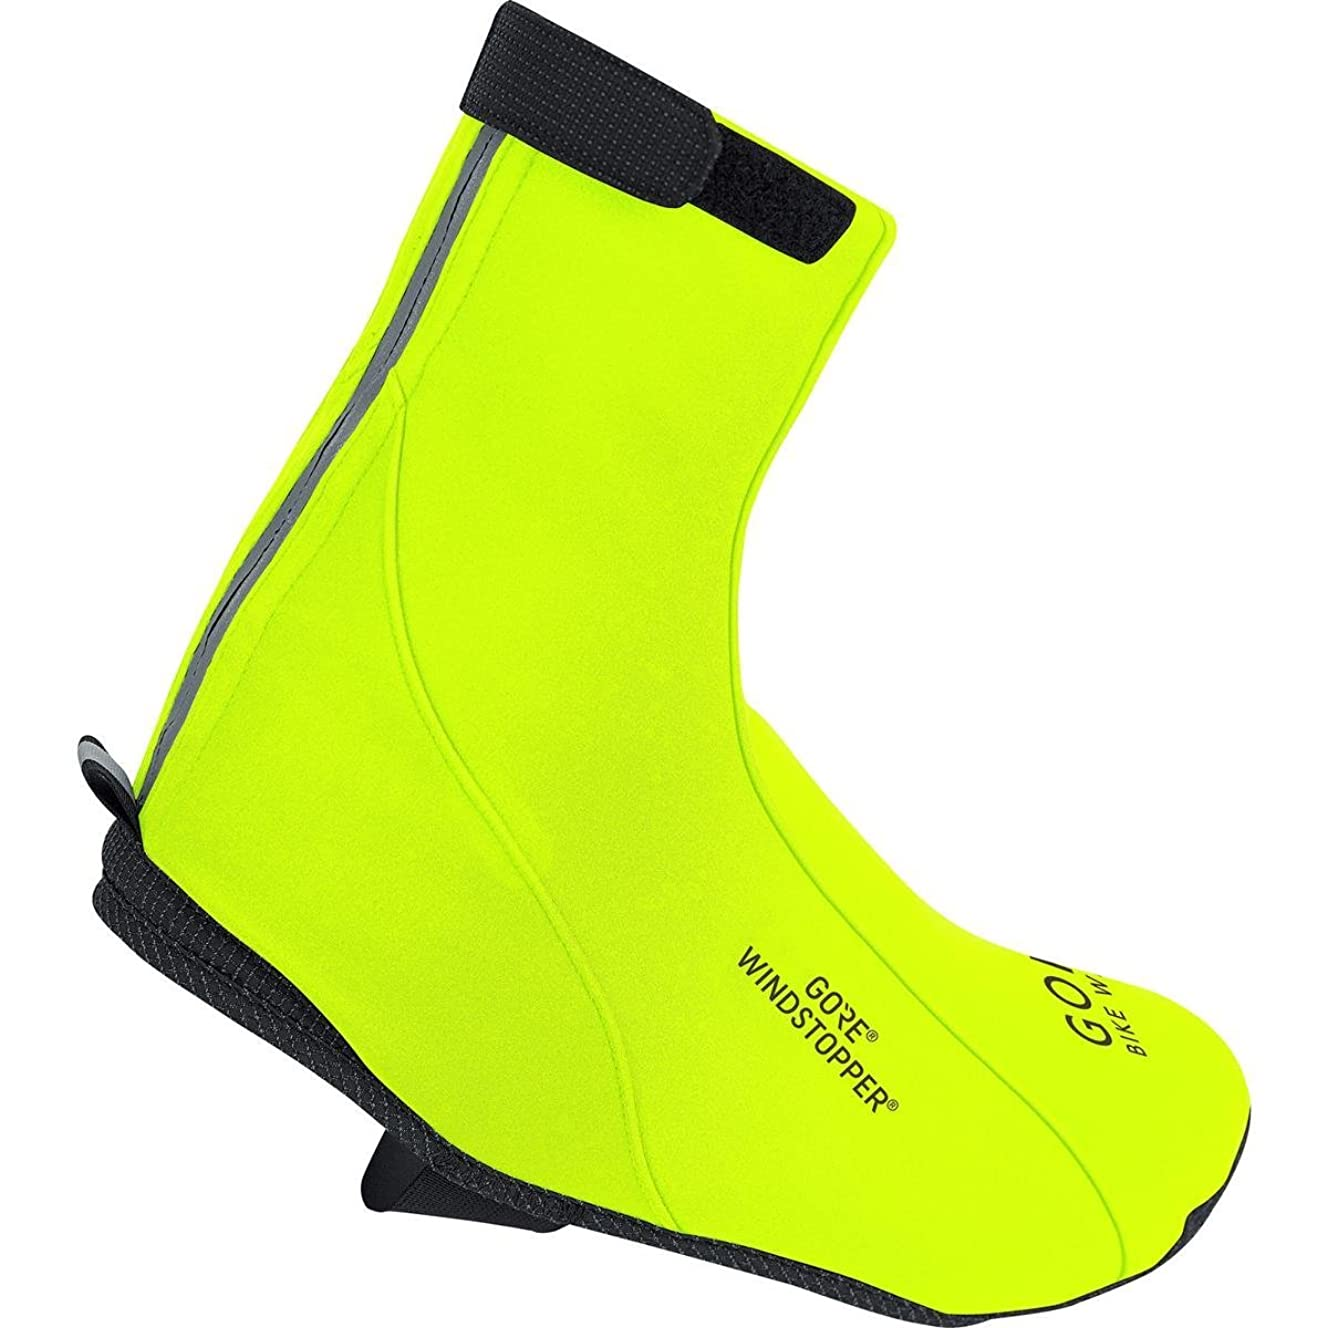 Gore Bike Wear Men's Road Gore-Tex  Thermo Overshoes, Neon Yellow, 6.5-8.0